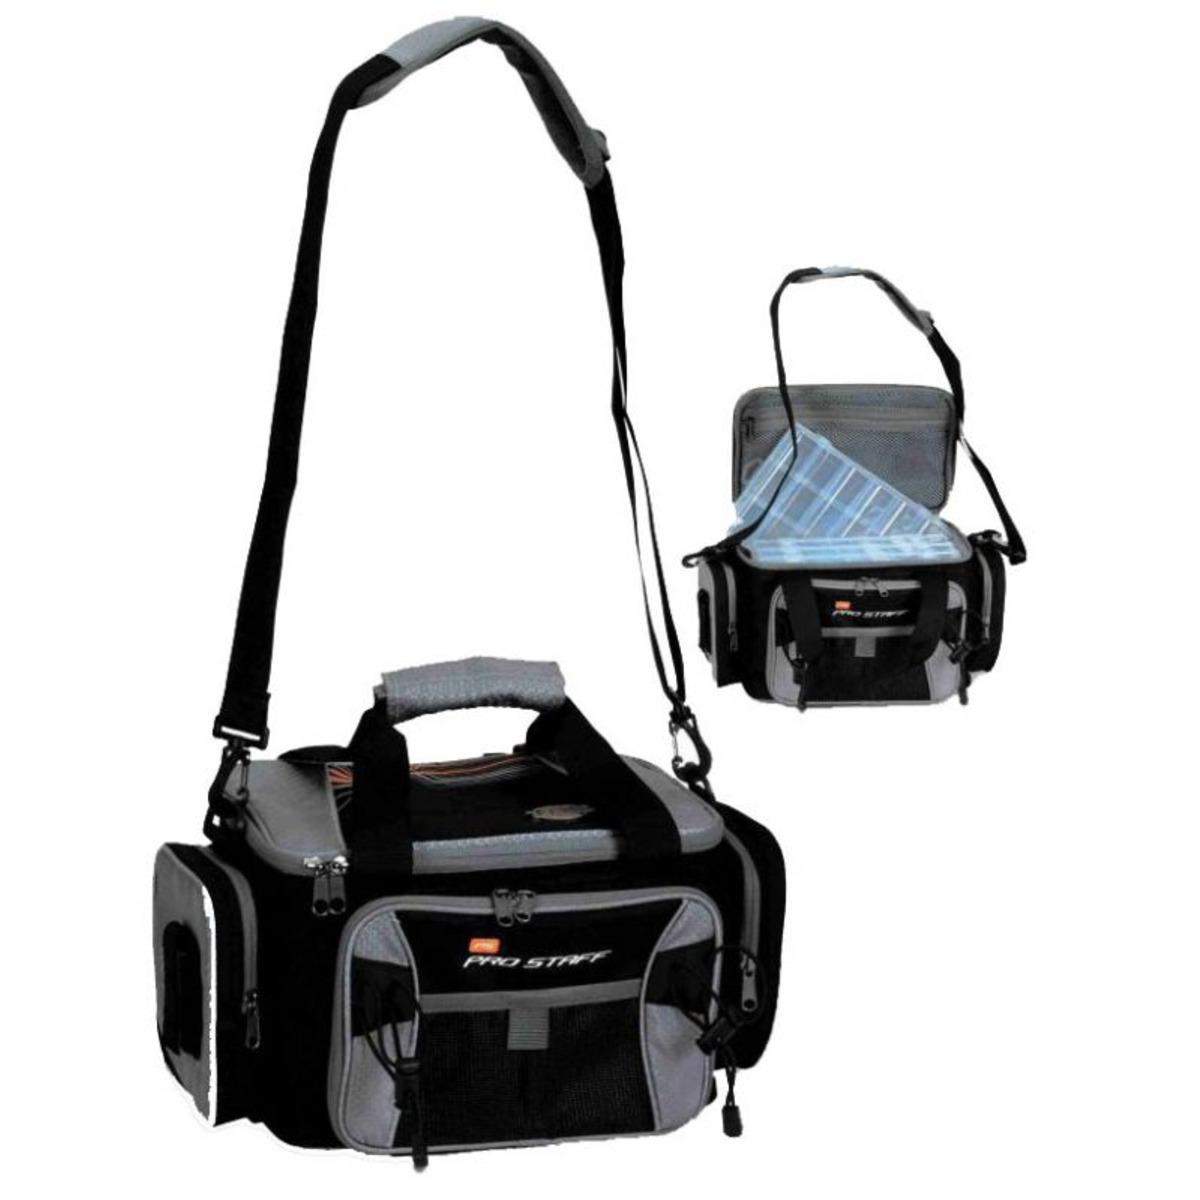 Zebco Pro Staff Deluxe Carry All - 41x25x20 cm